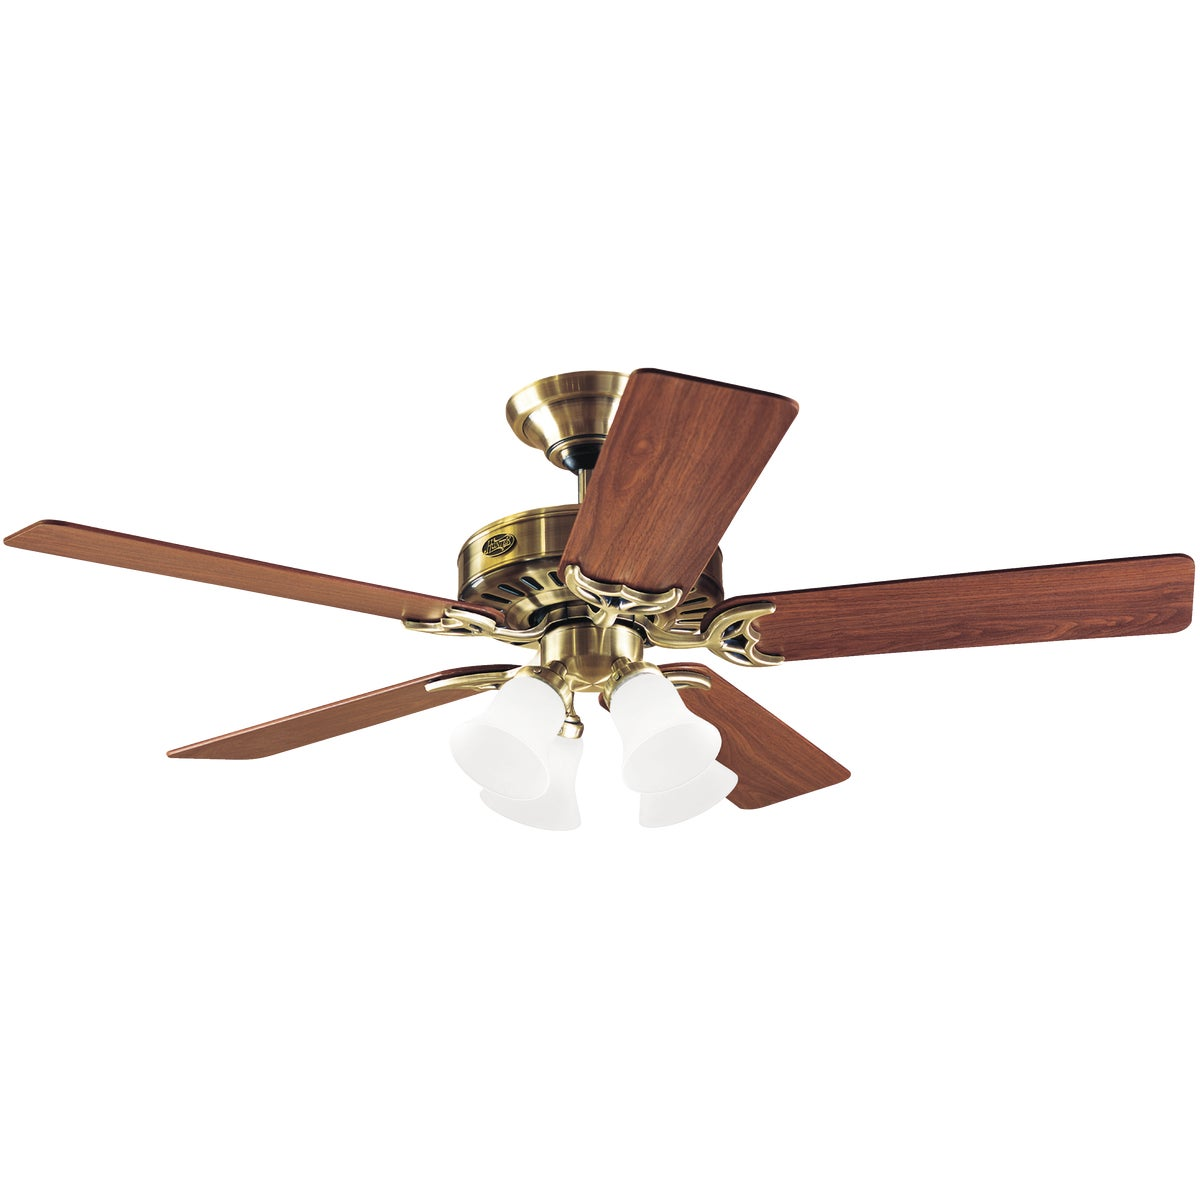 "52"" AB CEIL FAN W/LIGHT - 20182 by Hunter Fan Co"